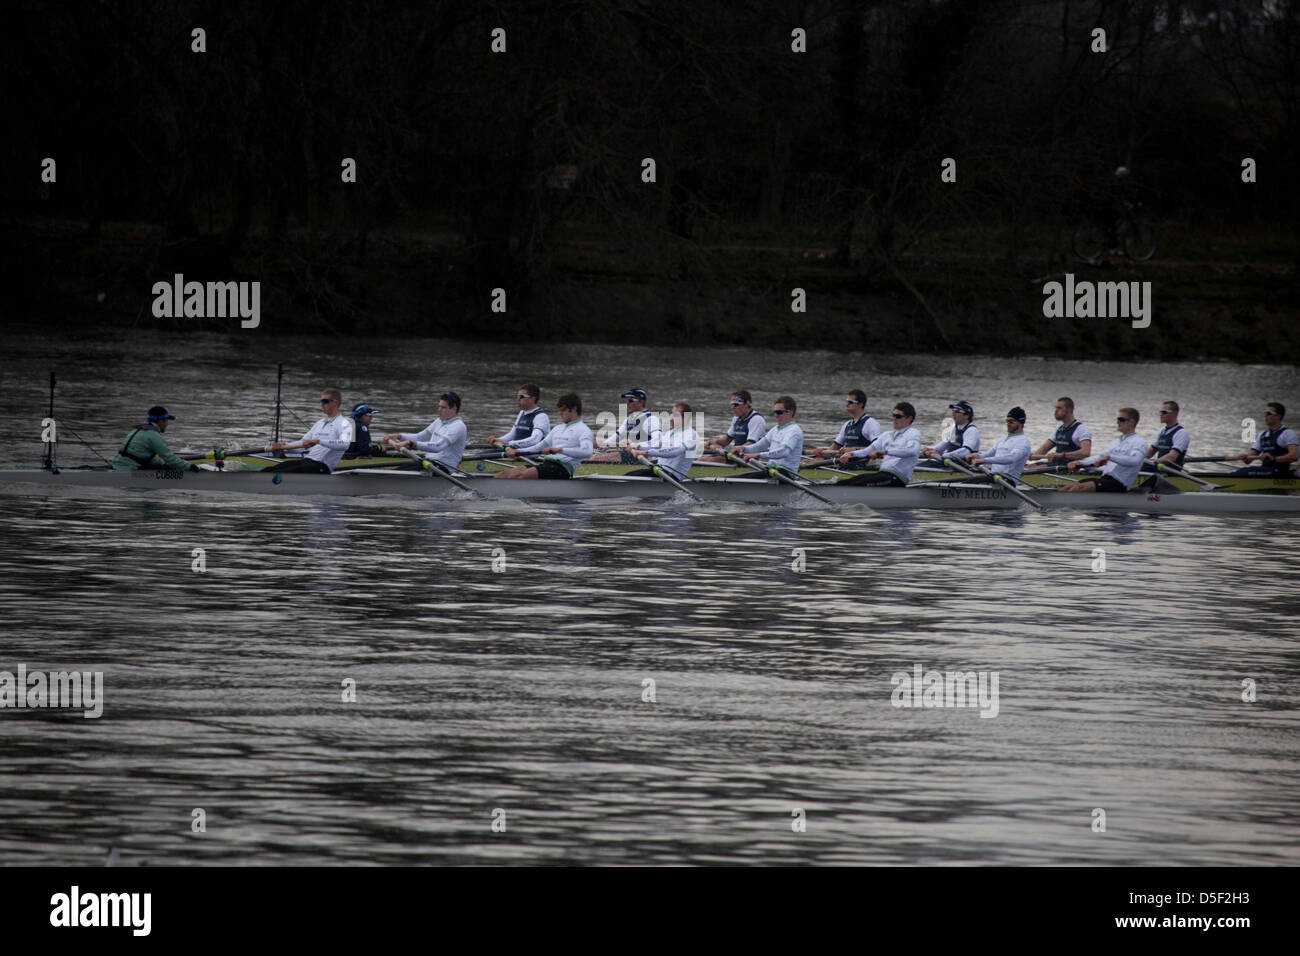 London, UK. 31st March, 2013. The London Boat Race takes place between Oxford University and Cambridge University - Stock Image